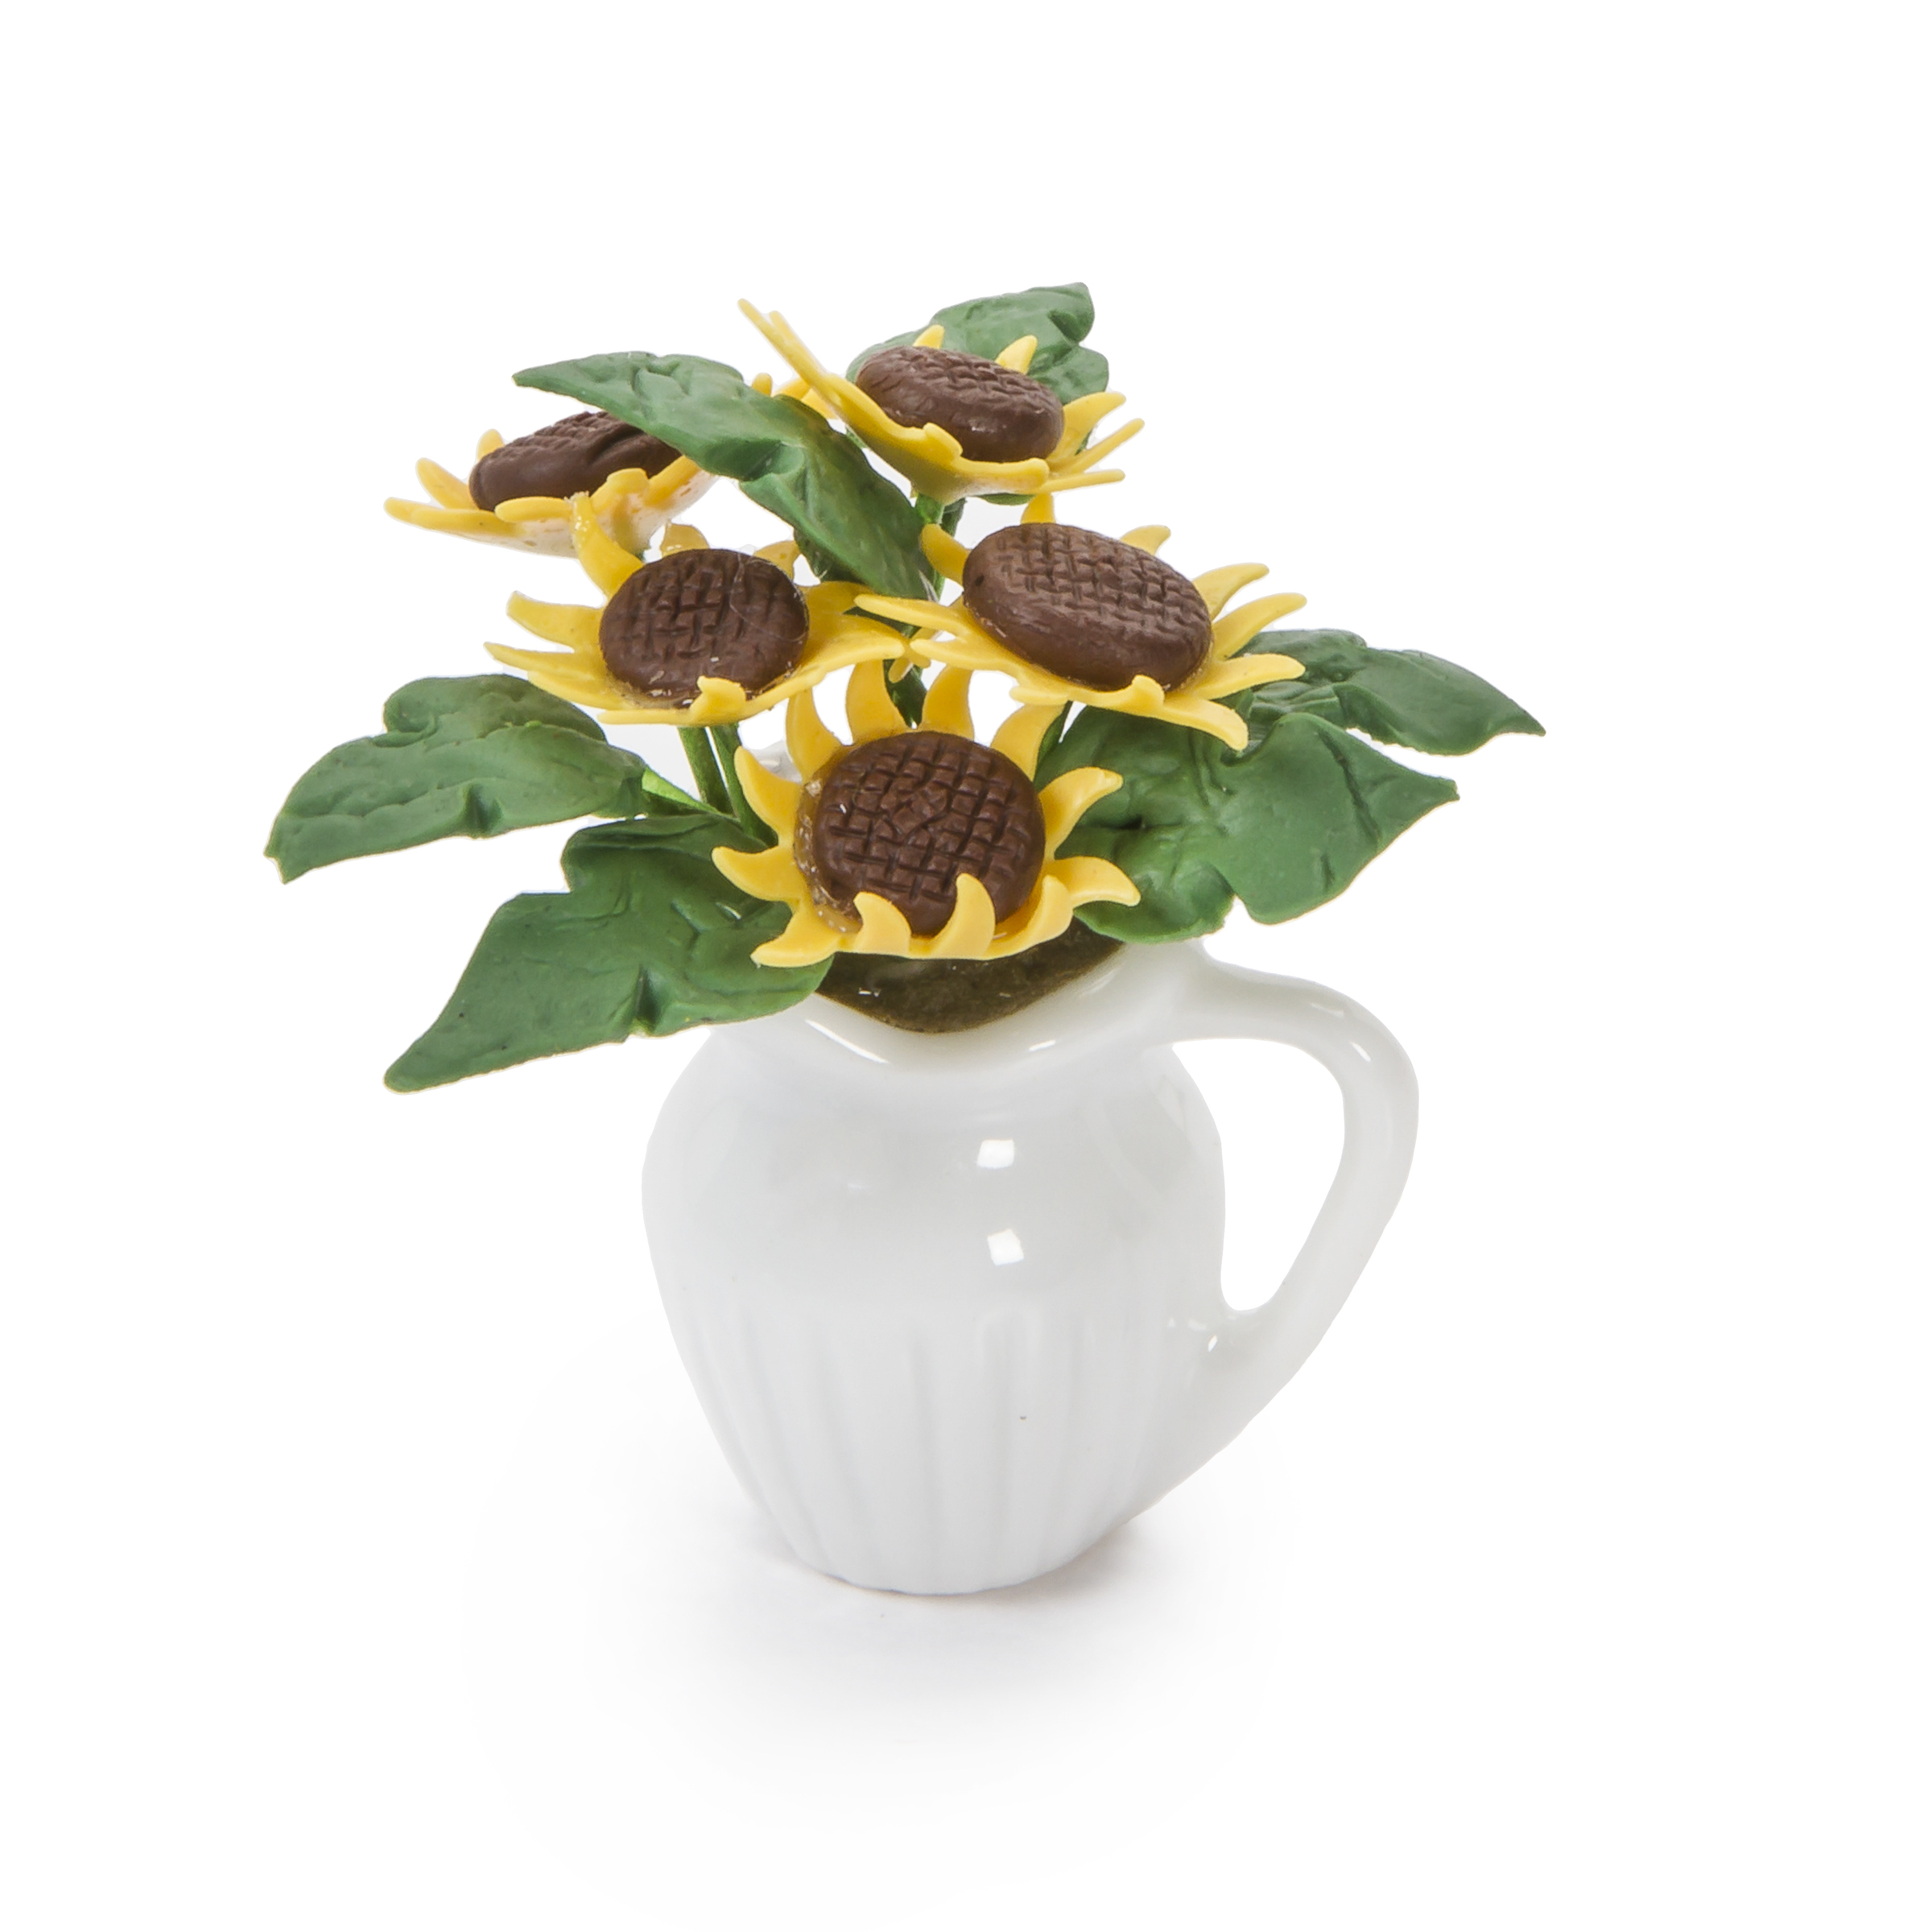 Darice Timeless Minis Handmade Sunflower Centerpiece 1.25 X 1.75 inches